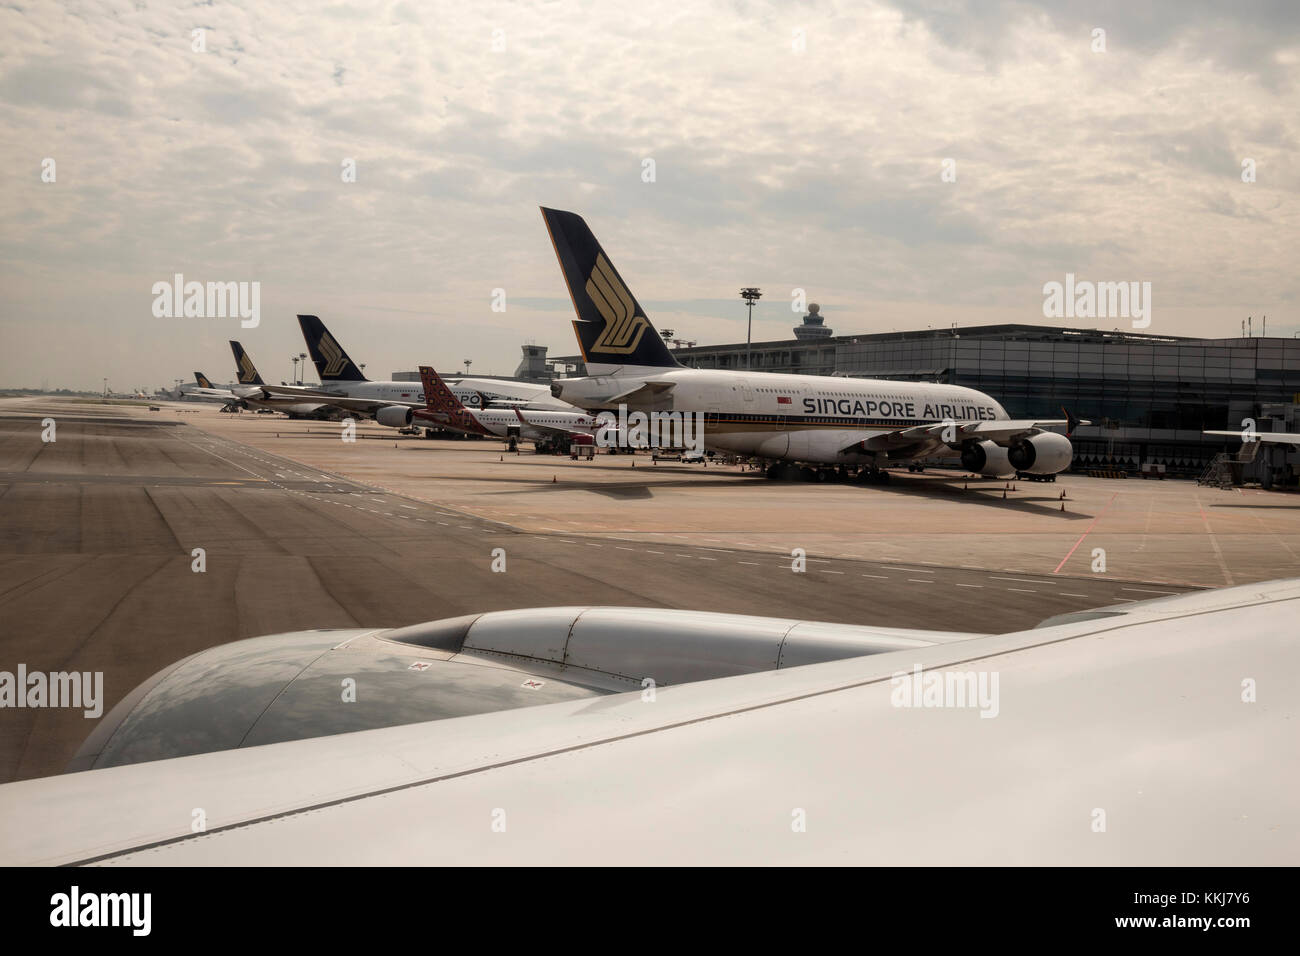 4 Singapore Airlines A380 aircraft on the apron at Changi International Airport Singapore - Stock Image